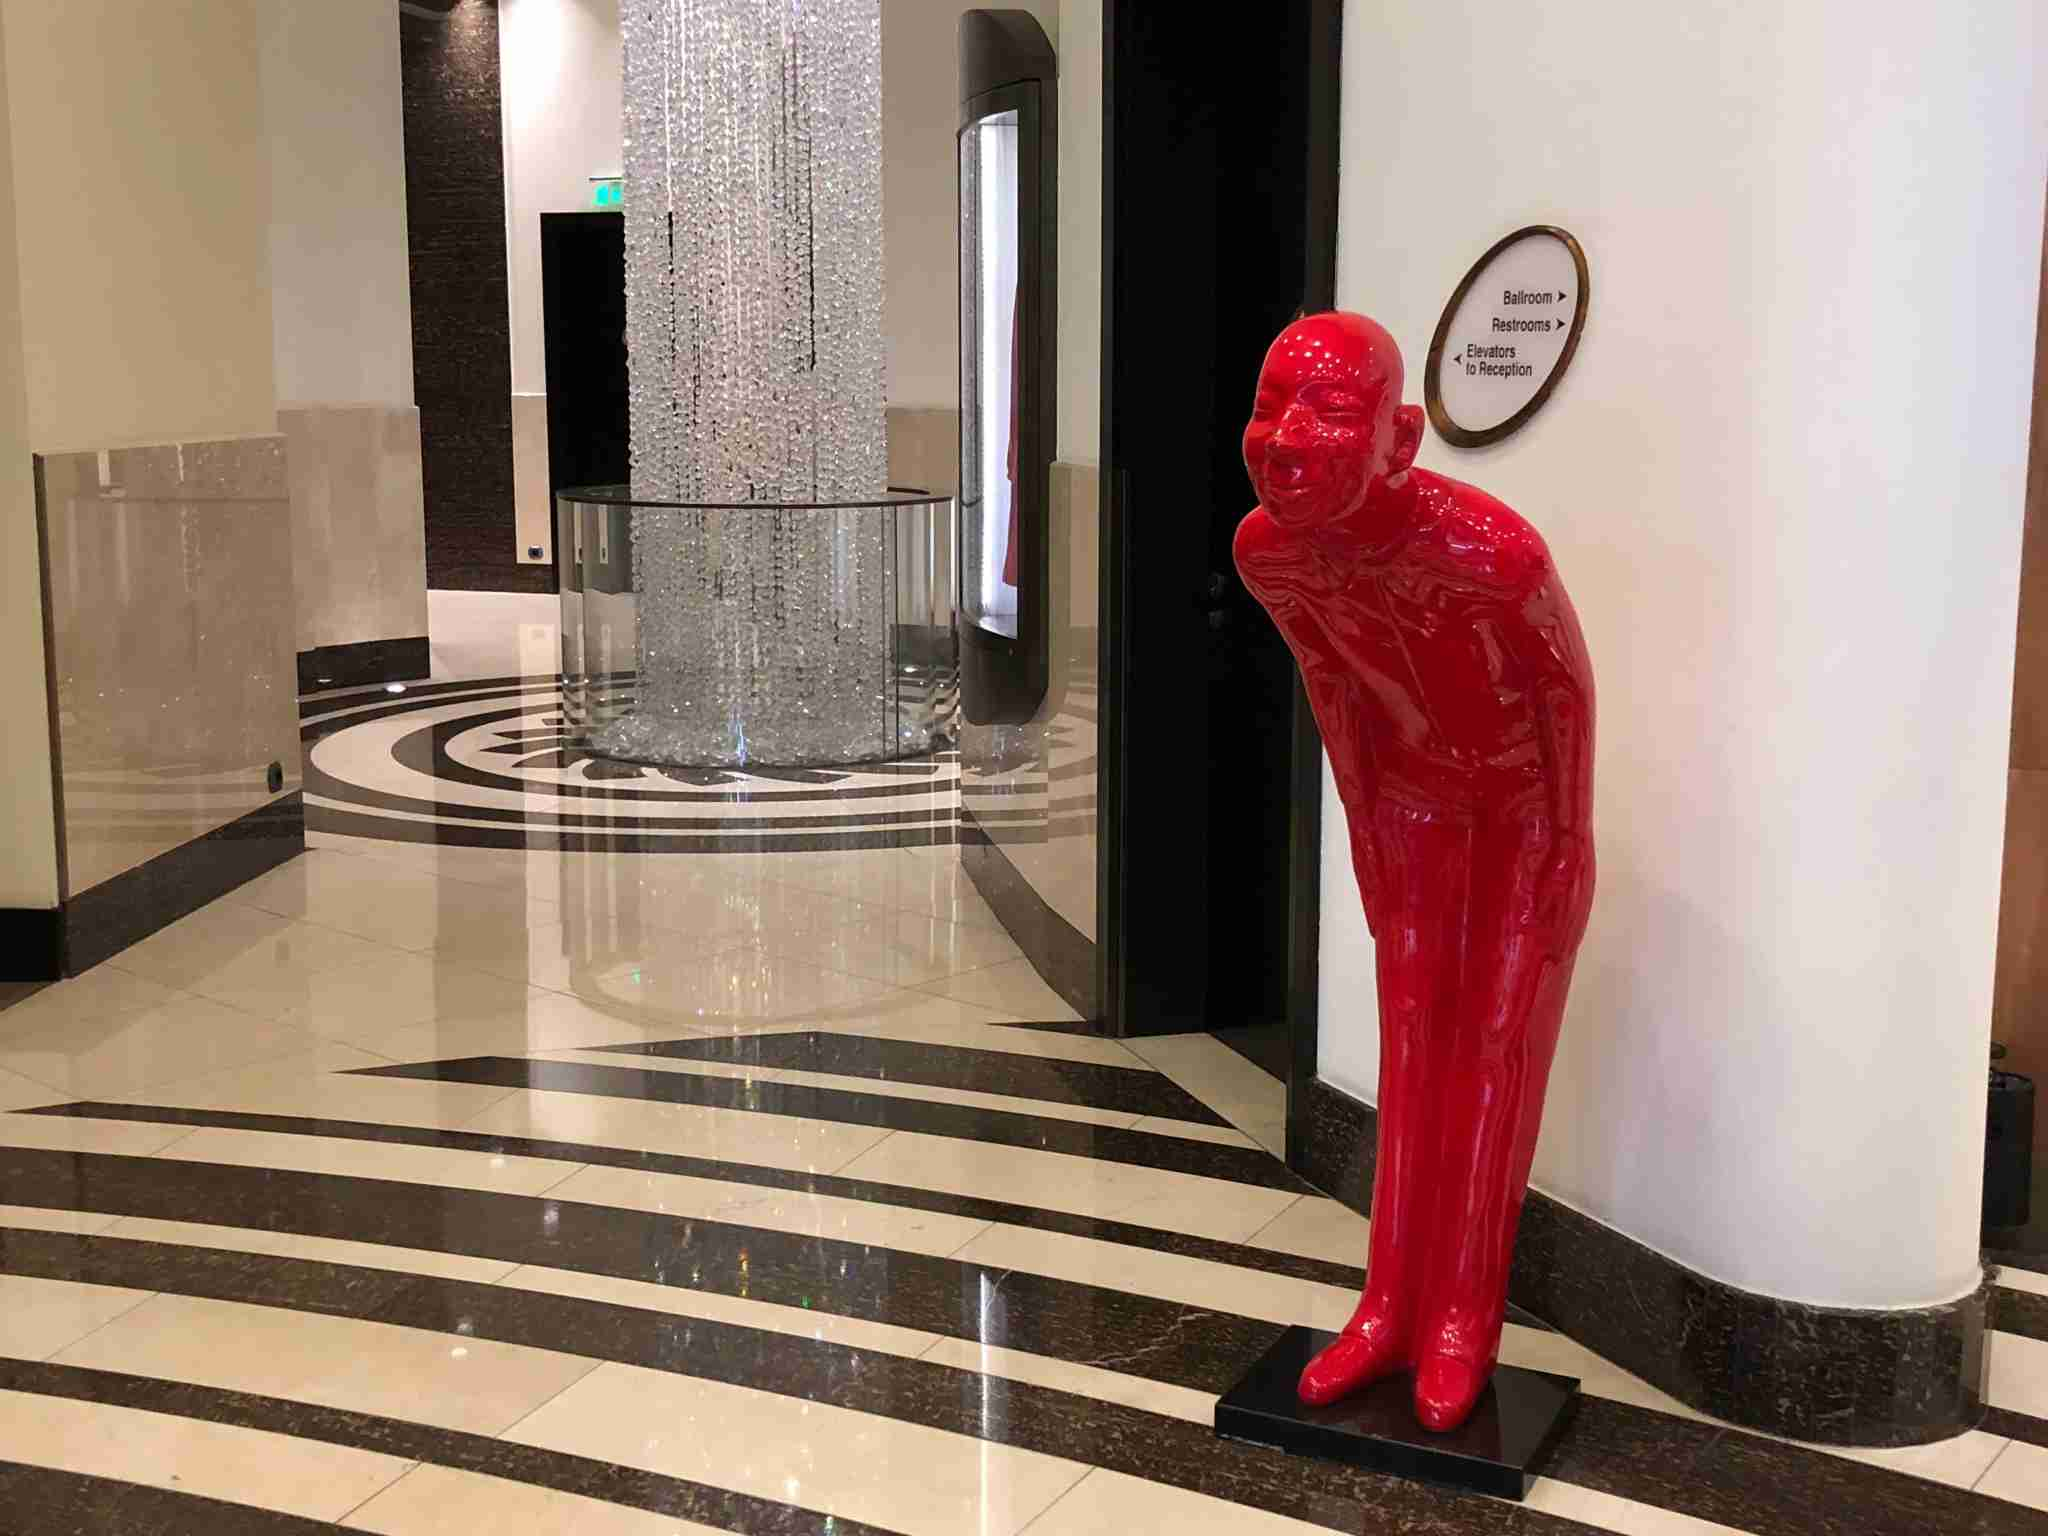 The statue greeting guests in the lower lobby of the Ritz Carlton Almaty.